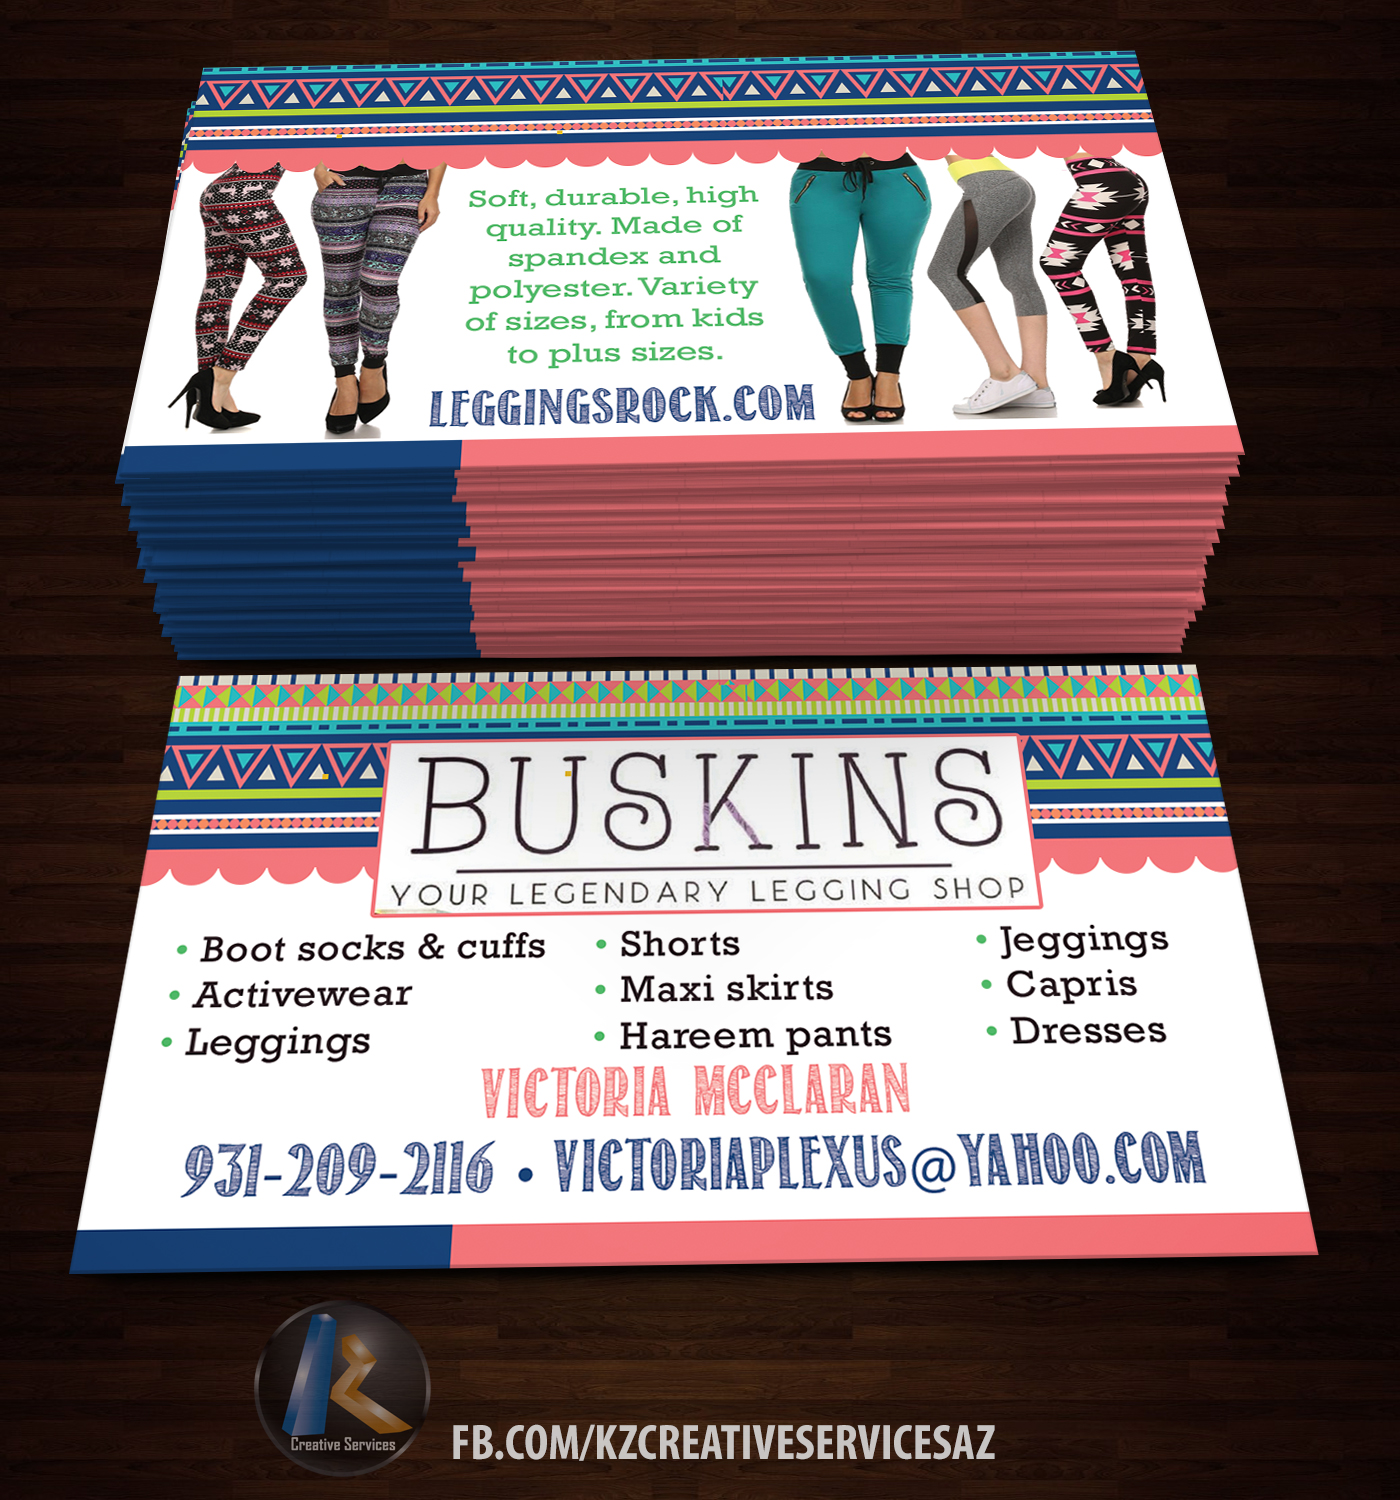 Buskins business cards style 1 kz creative services online store buskins business cards style 1 reheart Gallery